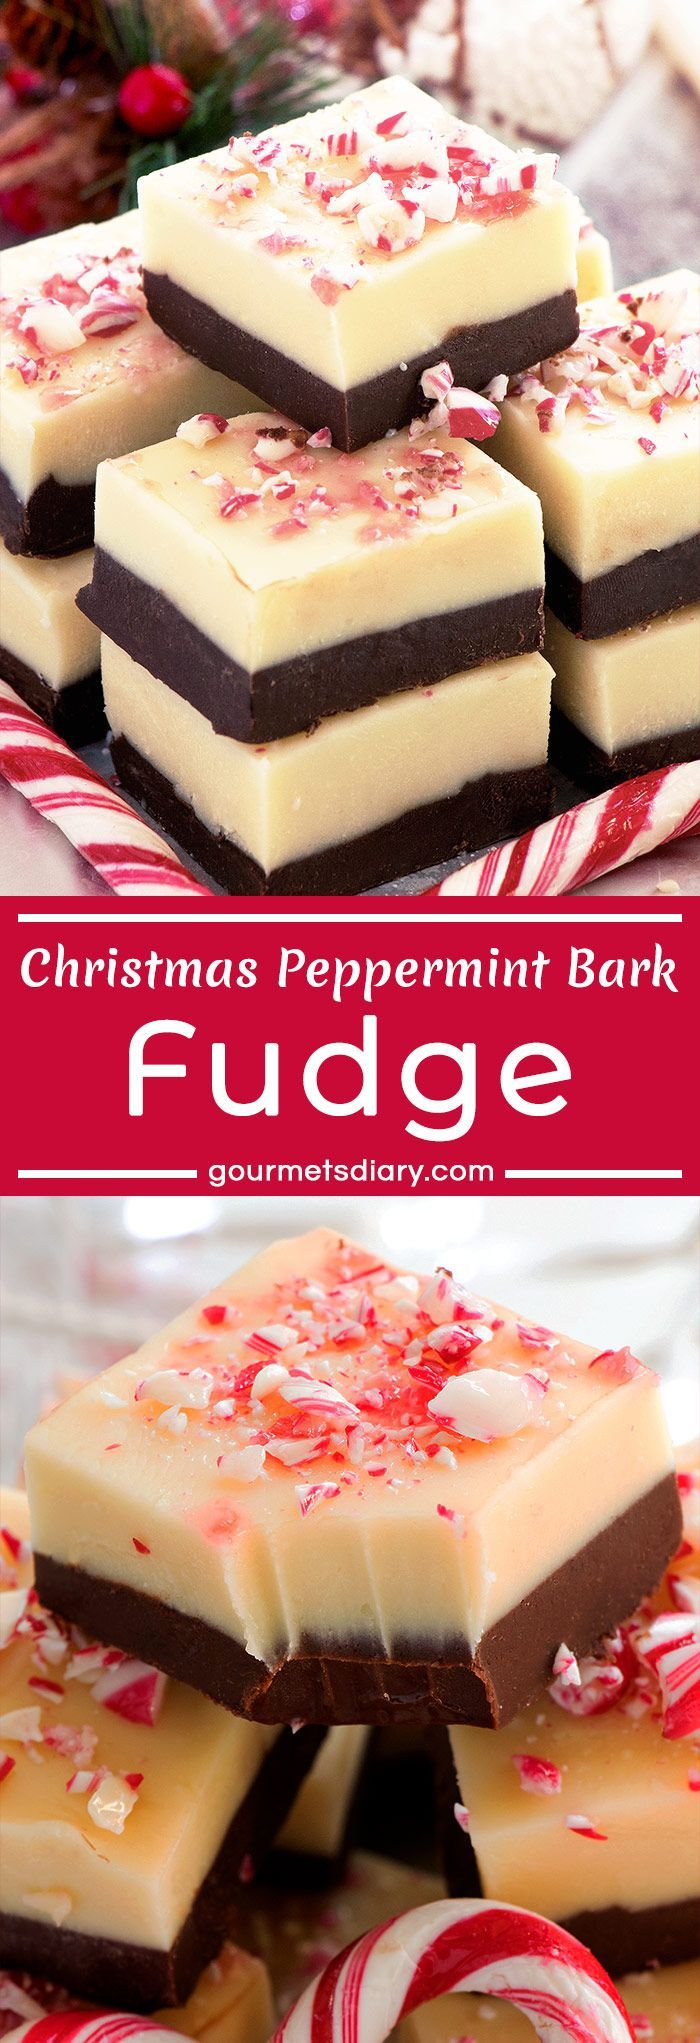 "Christmas Peppermint Bark Fudge - For the real taste of Christmas try Peppermint - Christmas Peppermint Bark Fudge – For the real taste of Christmas try Peppermint…  Christmas Peppermint Bark Fudge – For the real taste of Christmas try Peppermint Bark Fudge – ""After Eight"" and candy canes flavored, dark and white chocolate layered, no-bake adorable fudge! So easy and fast to make, 6 ingredients only!"